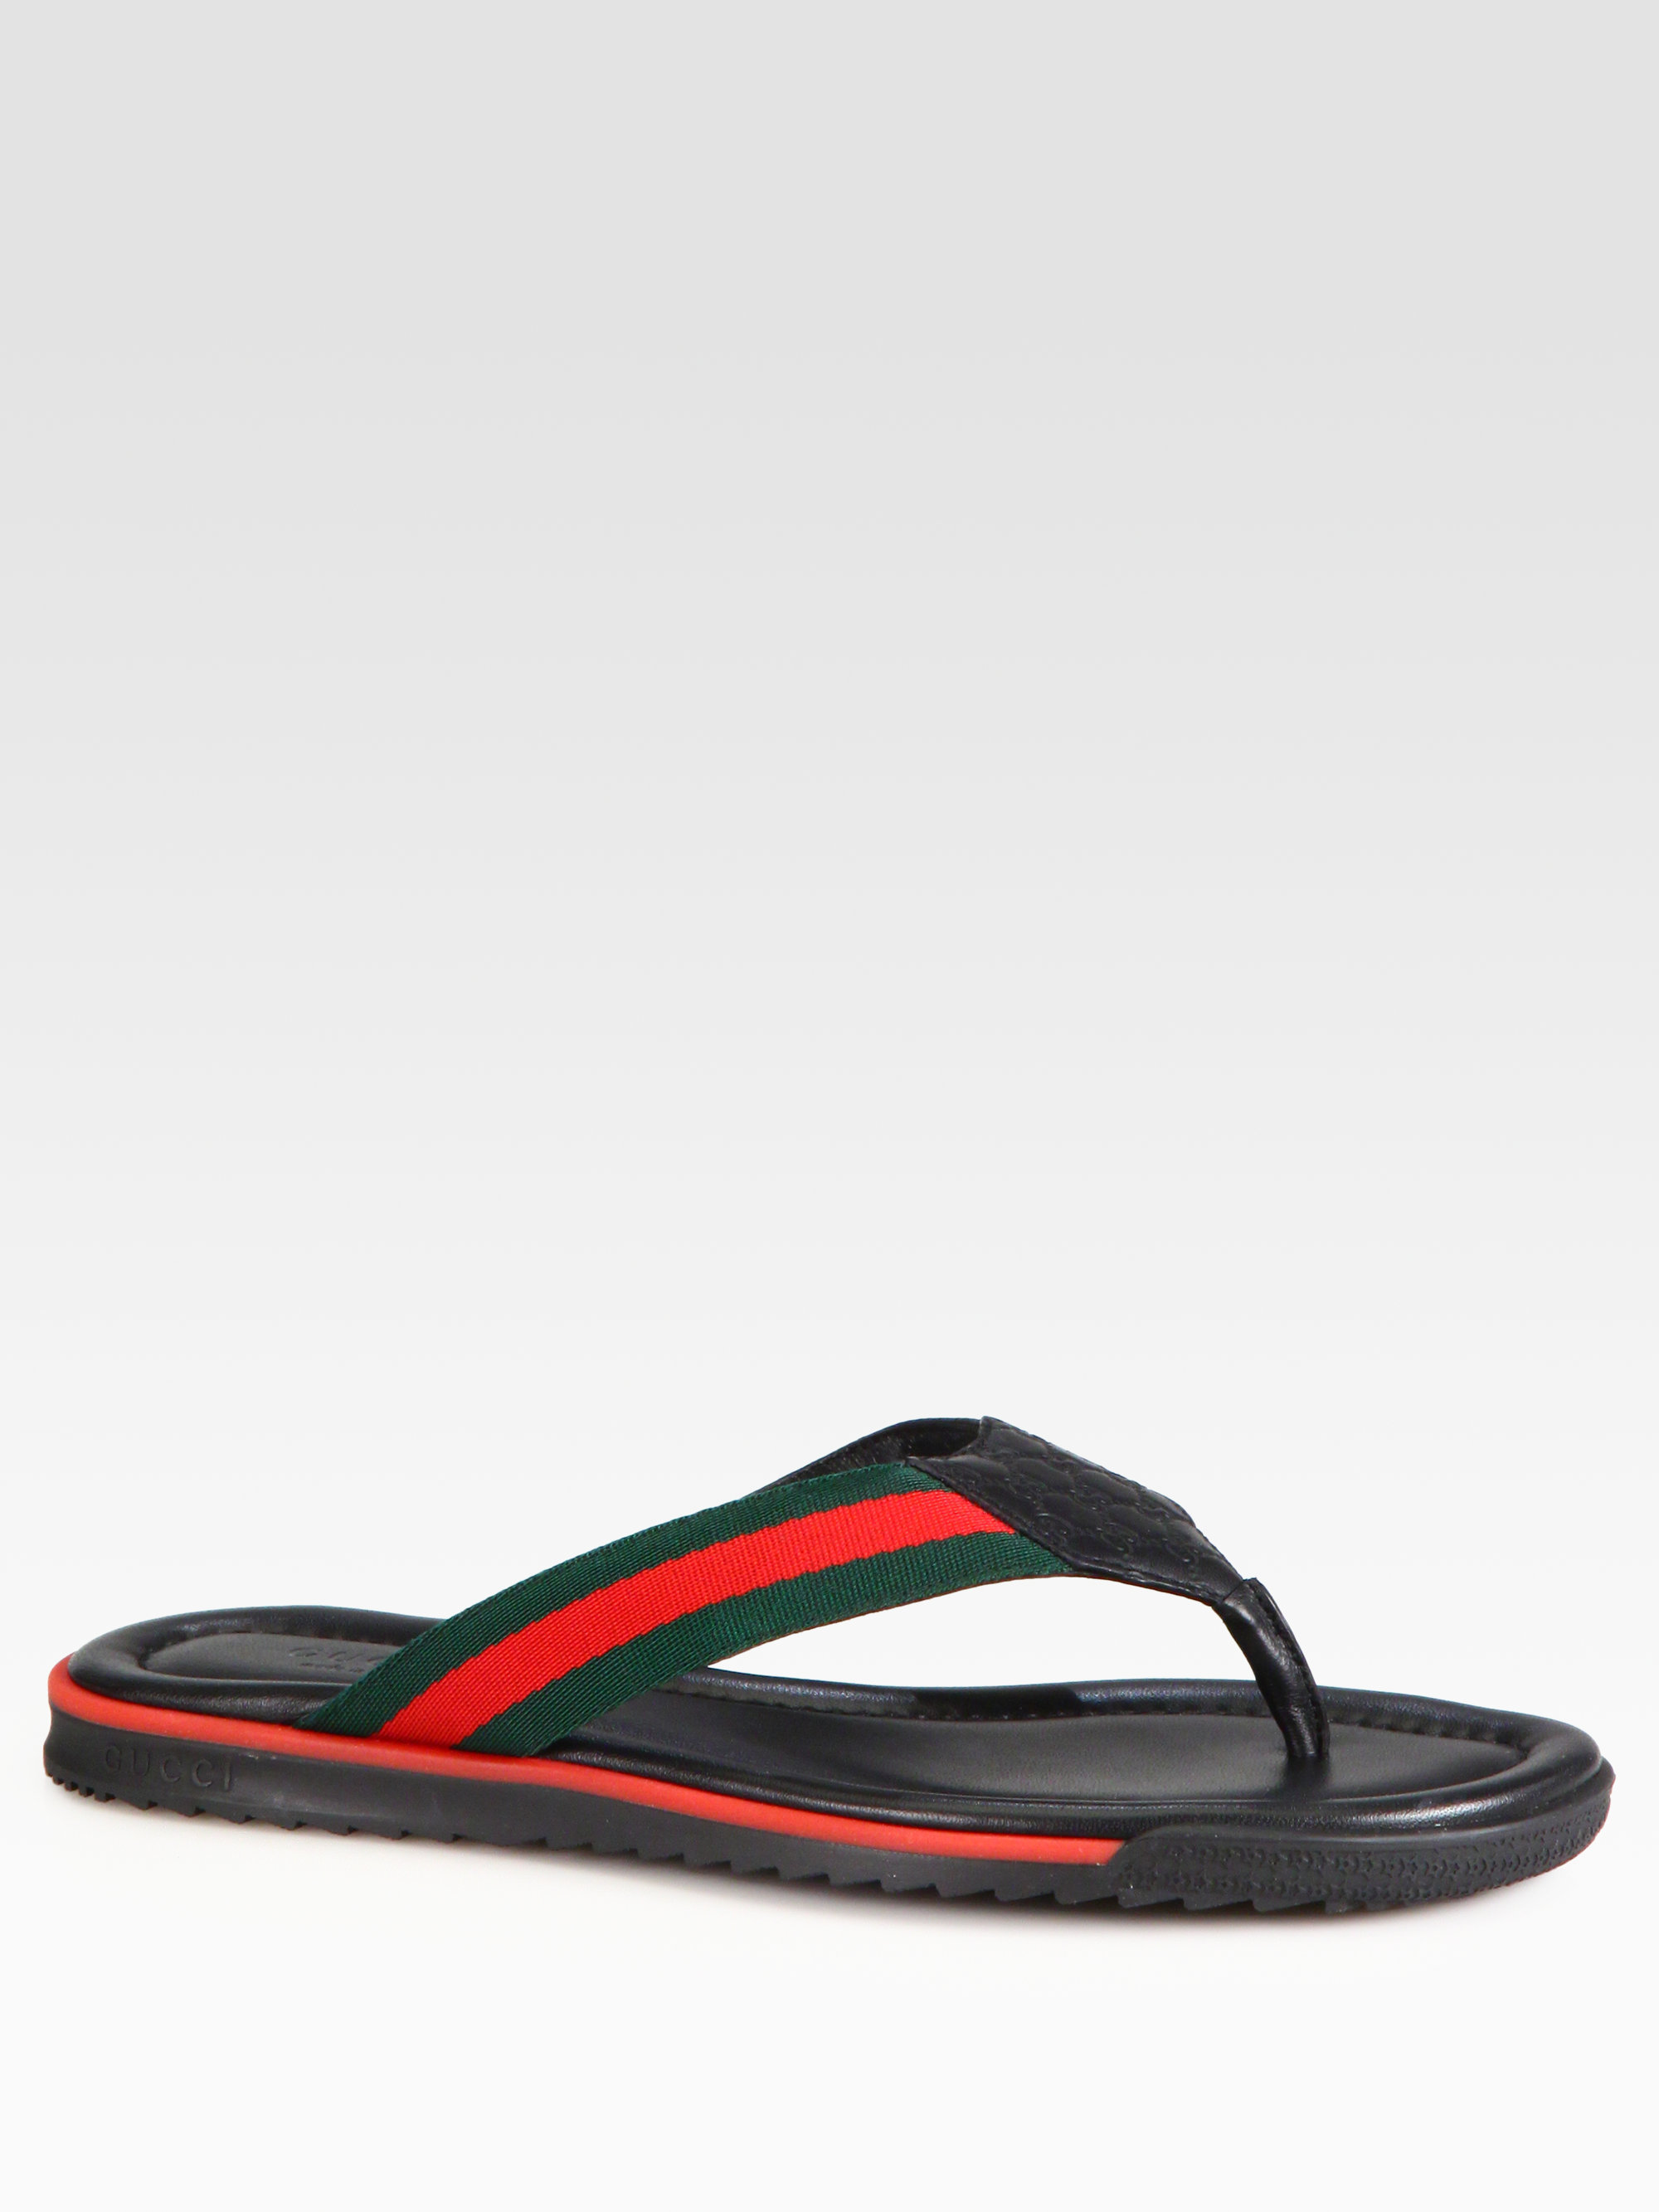 40ba1e1e5368 Lyst - Gucci Gg Leather Thong Sandals in Black